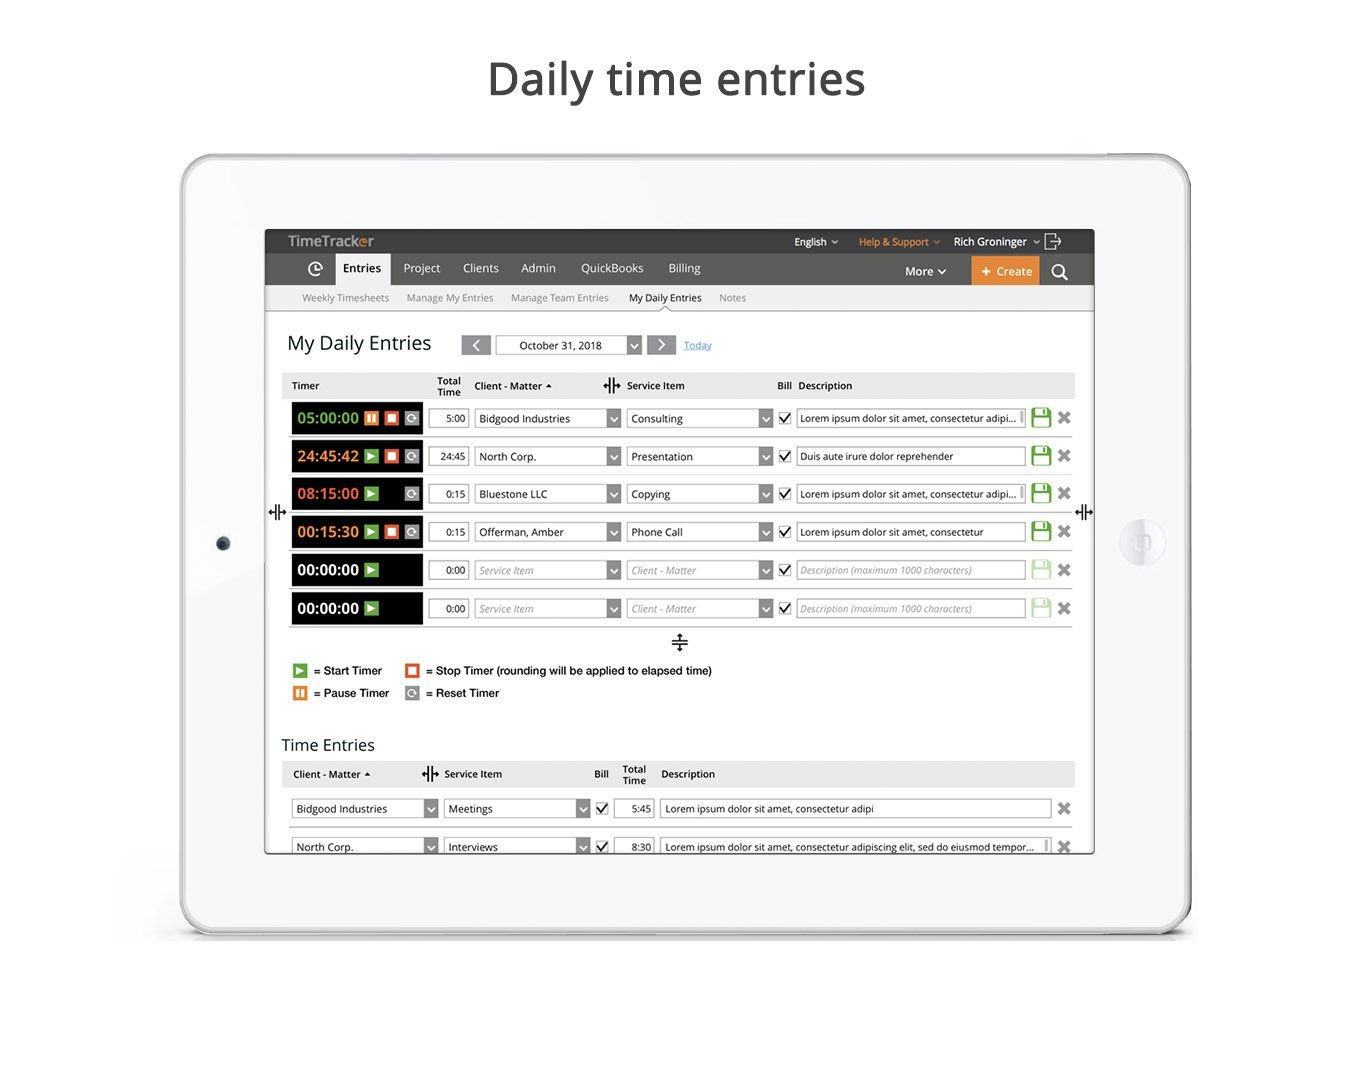 Daily time entries